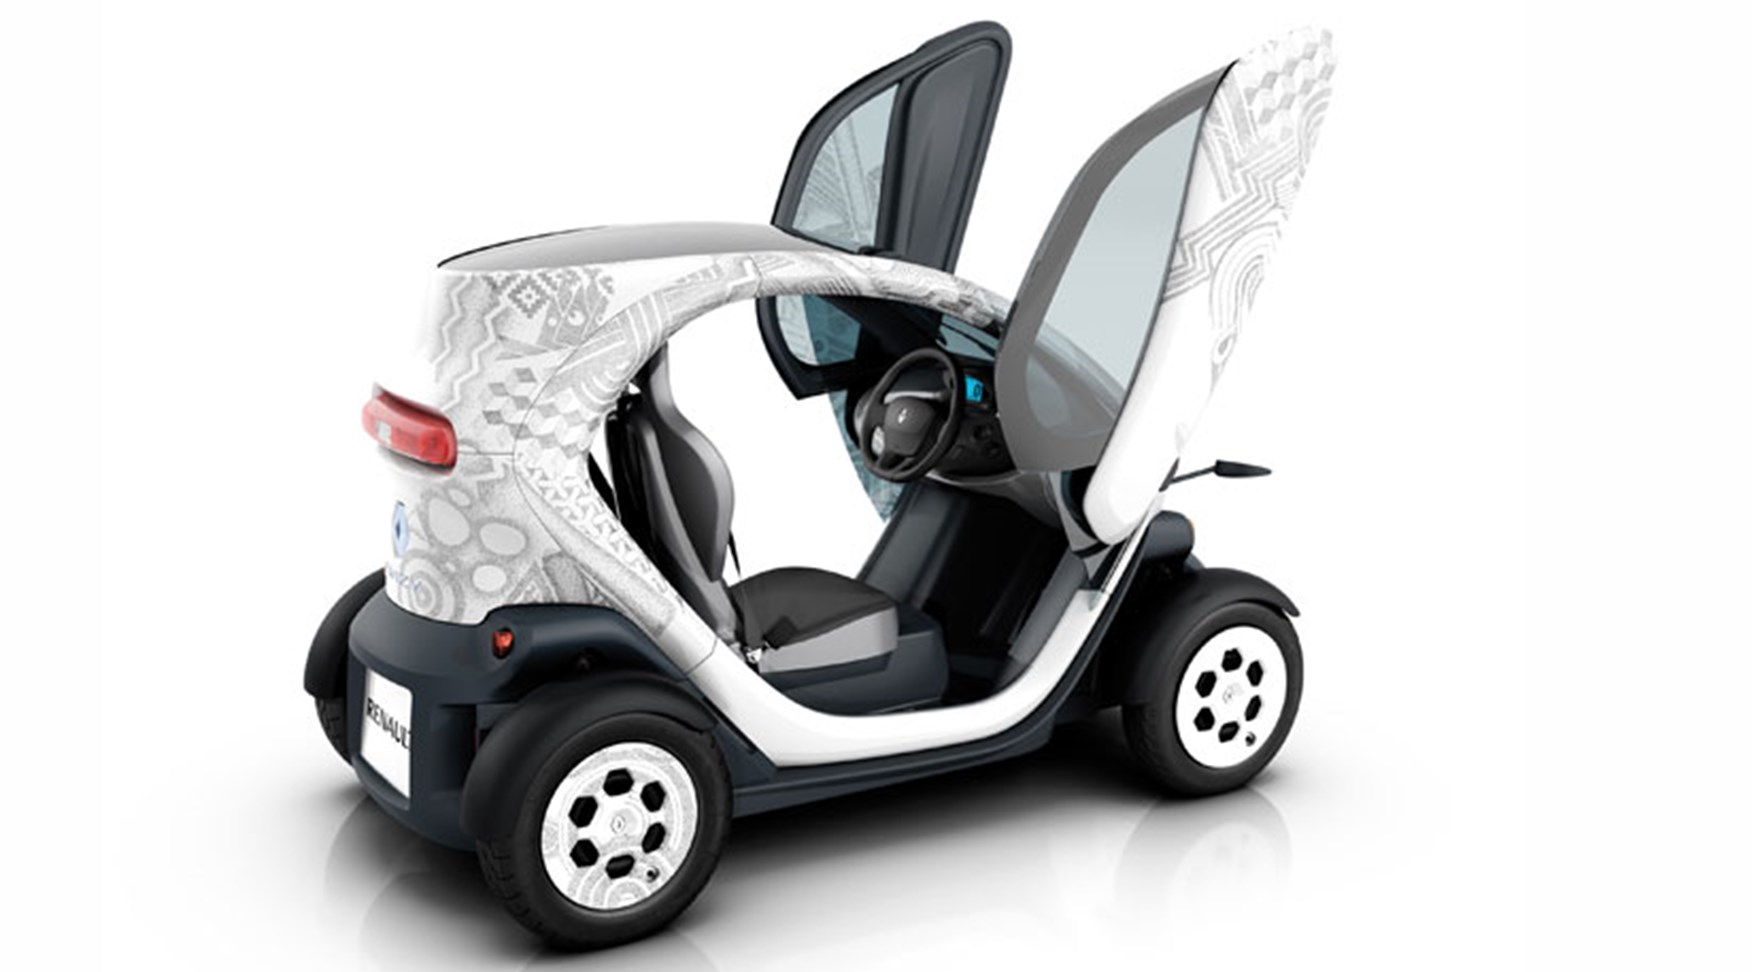 Renault Twizy 2011 The Tandem Seat Electric City Car By